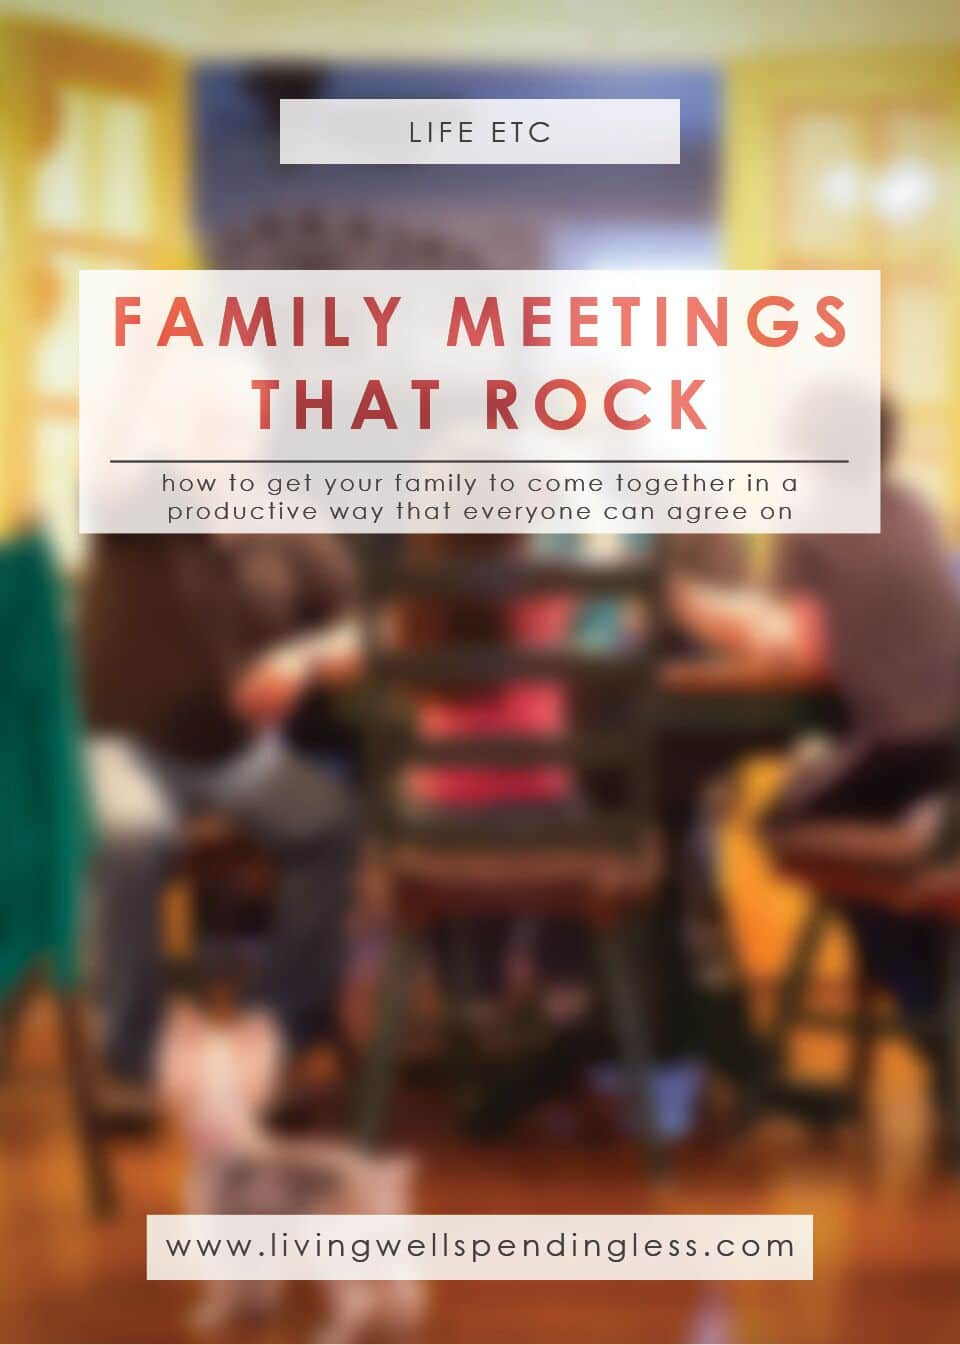 Follow these guidelines to ensure you have family meetings that rock!